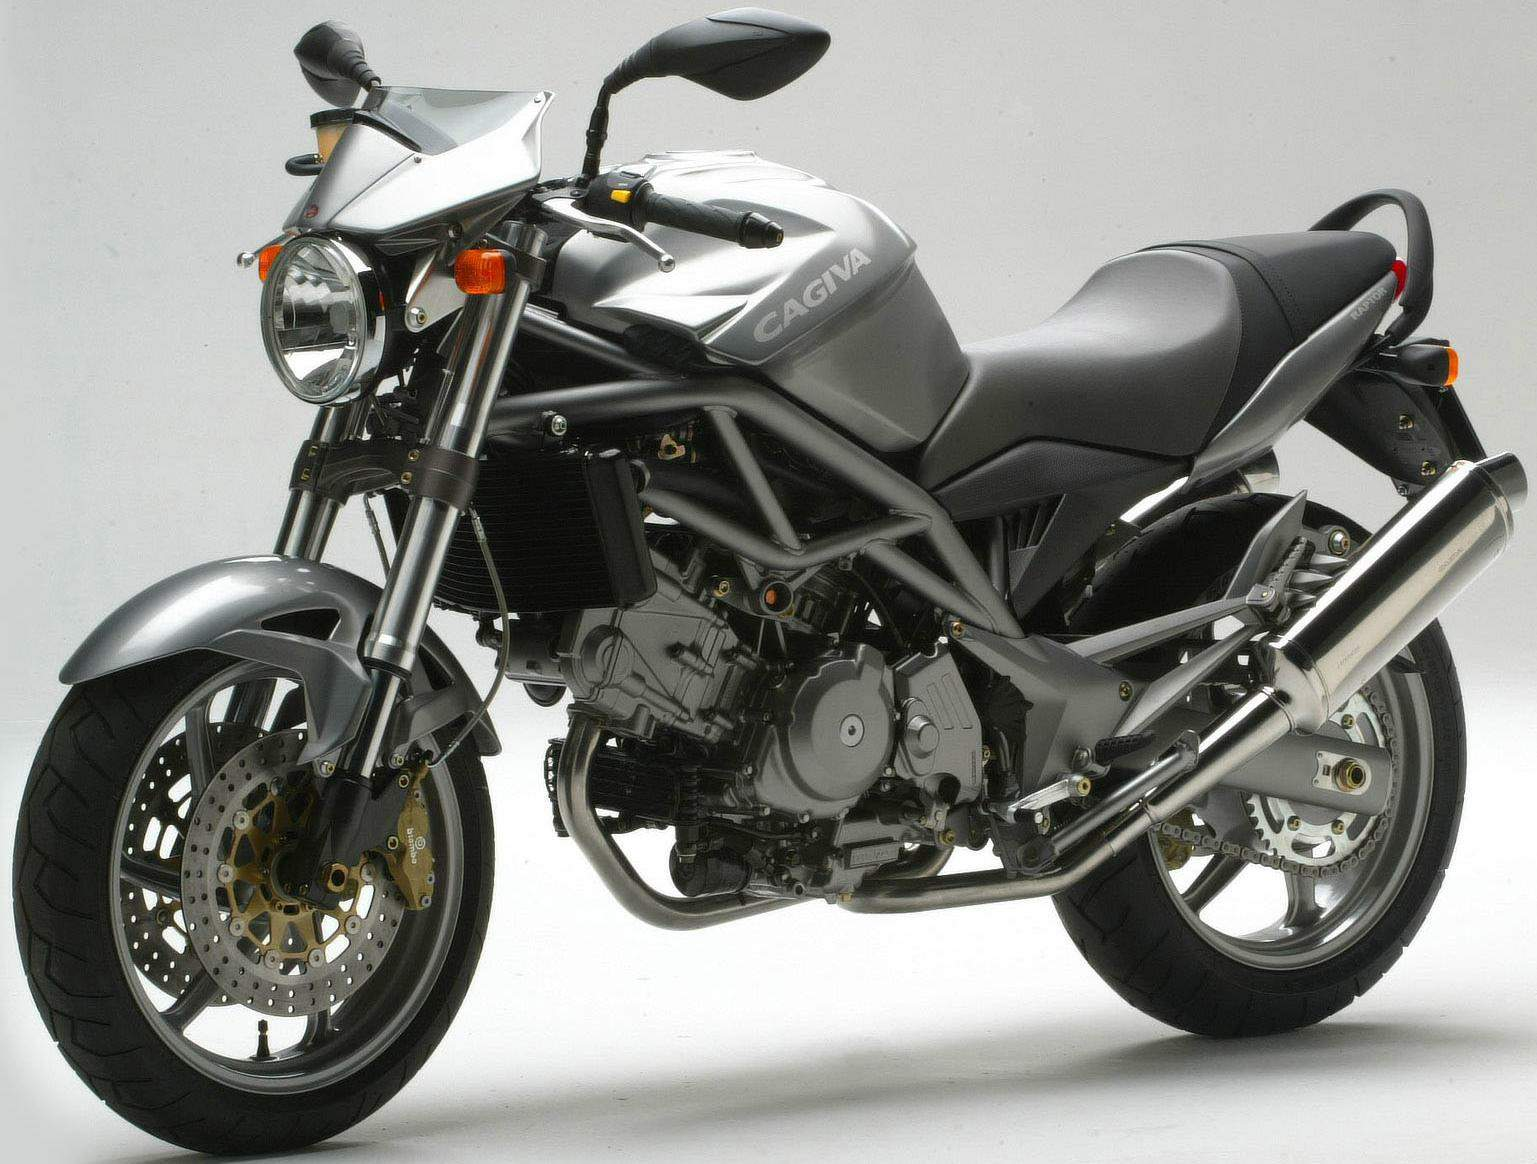 Cagiva Xtra Raptor 1000 images #68010